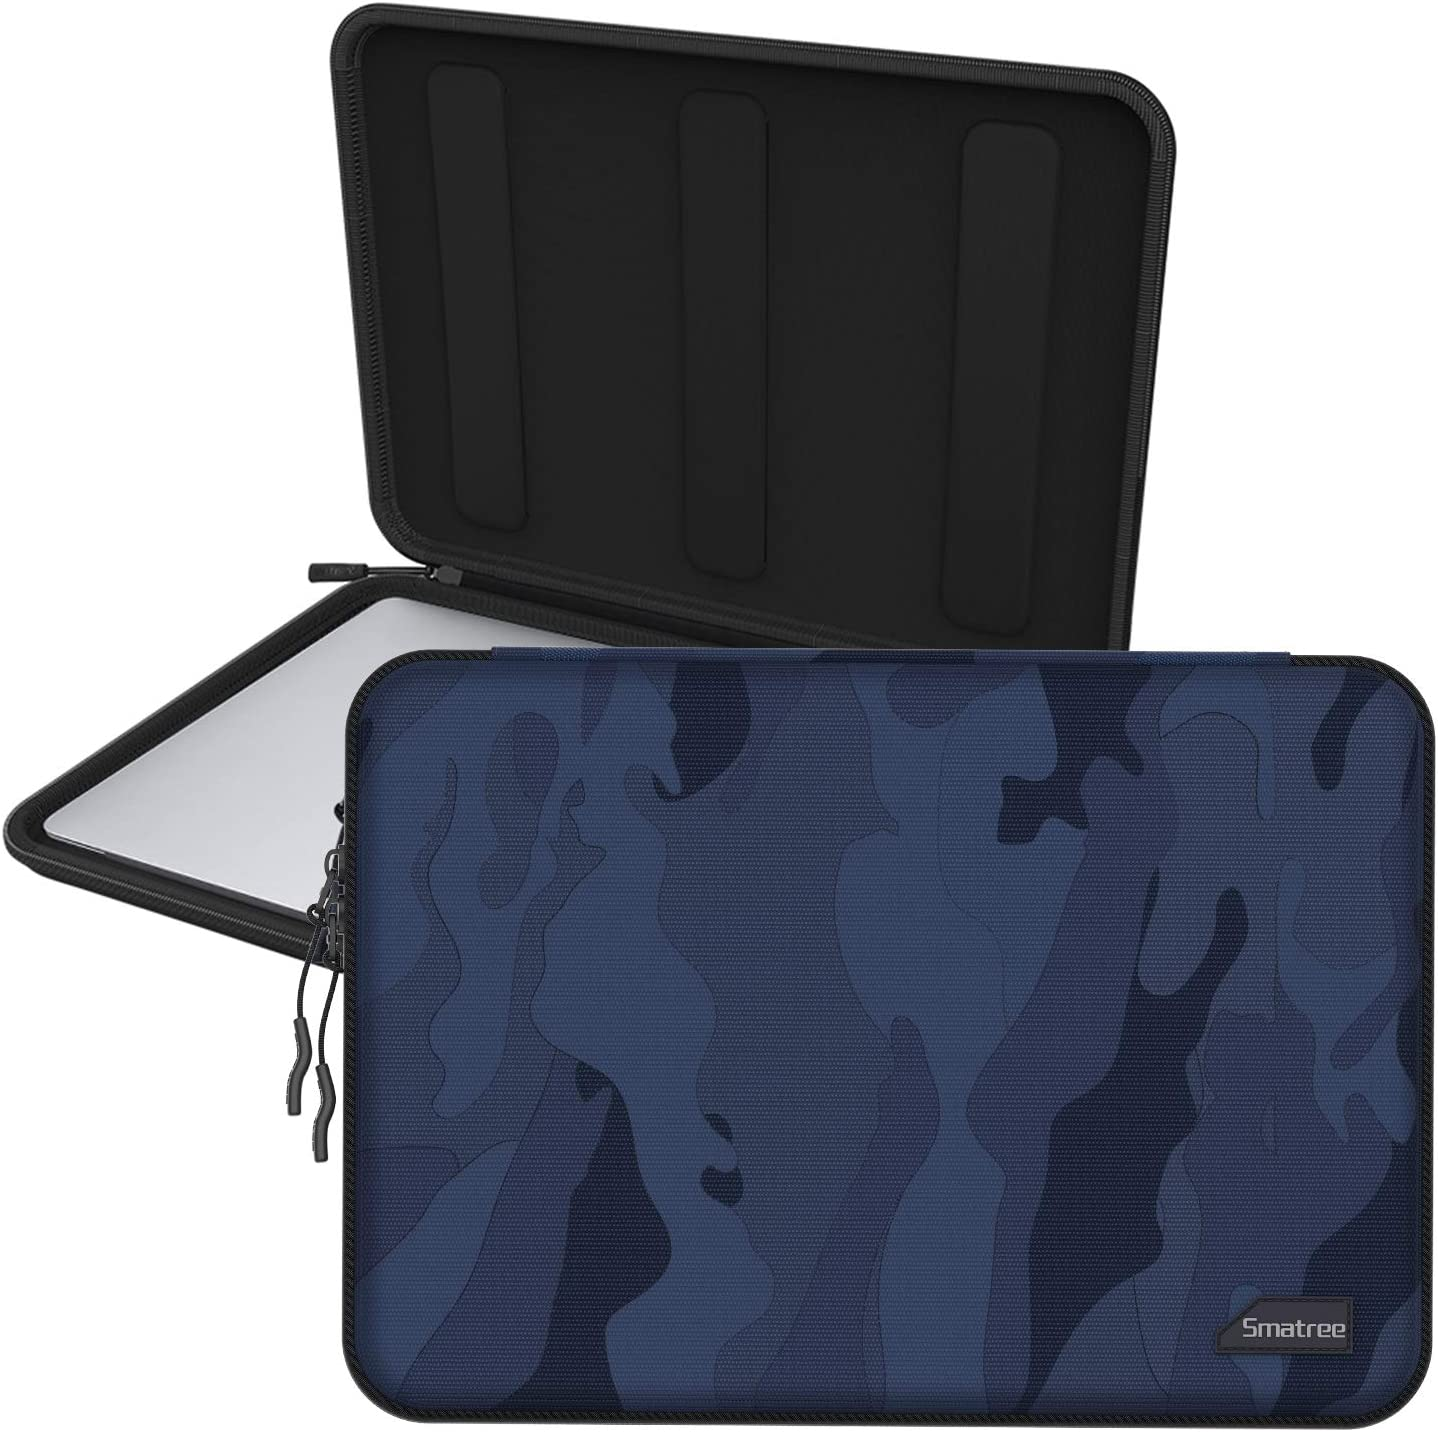 Smatree Hardshell Laptop Sleeve Compatible with 13.3inch MacBook Air/MacBook Pro 2020/2019/2018/2017 /12.9inch iPad Pro/ 12inch MacBook/ 11.6inch MacBook Air/Tablet Sleeve Case (Blue)